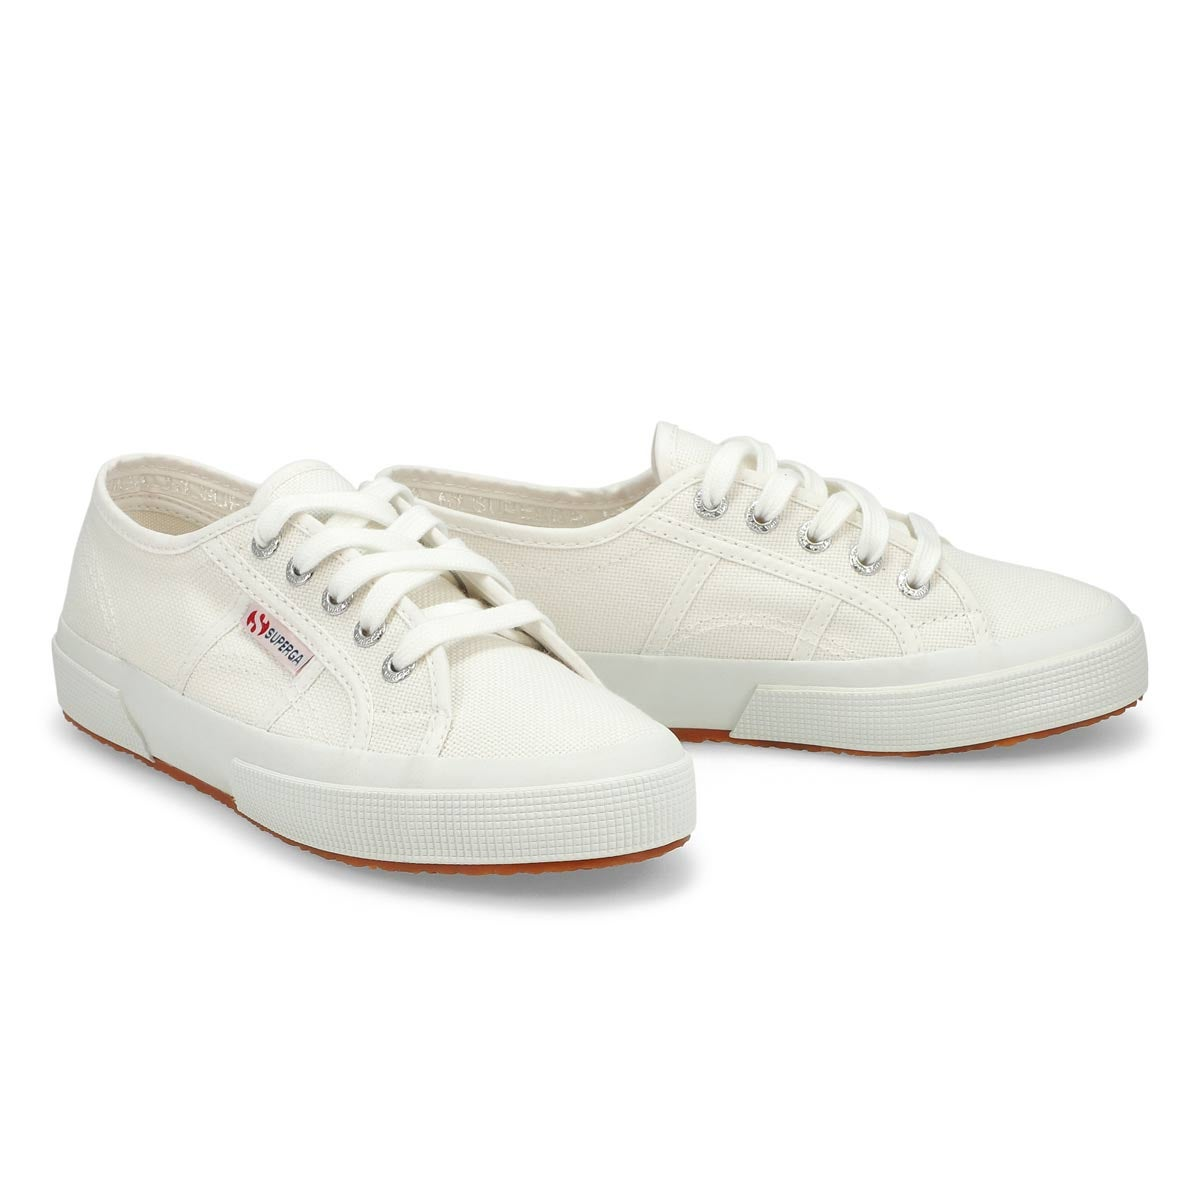 Lds Cotu Classic white canvas sneaker